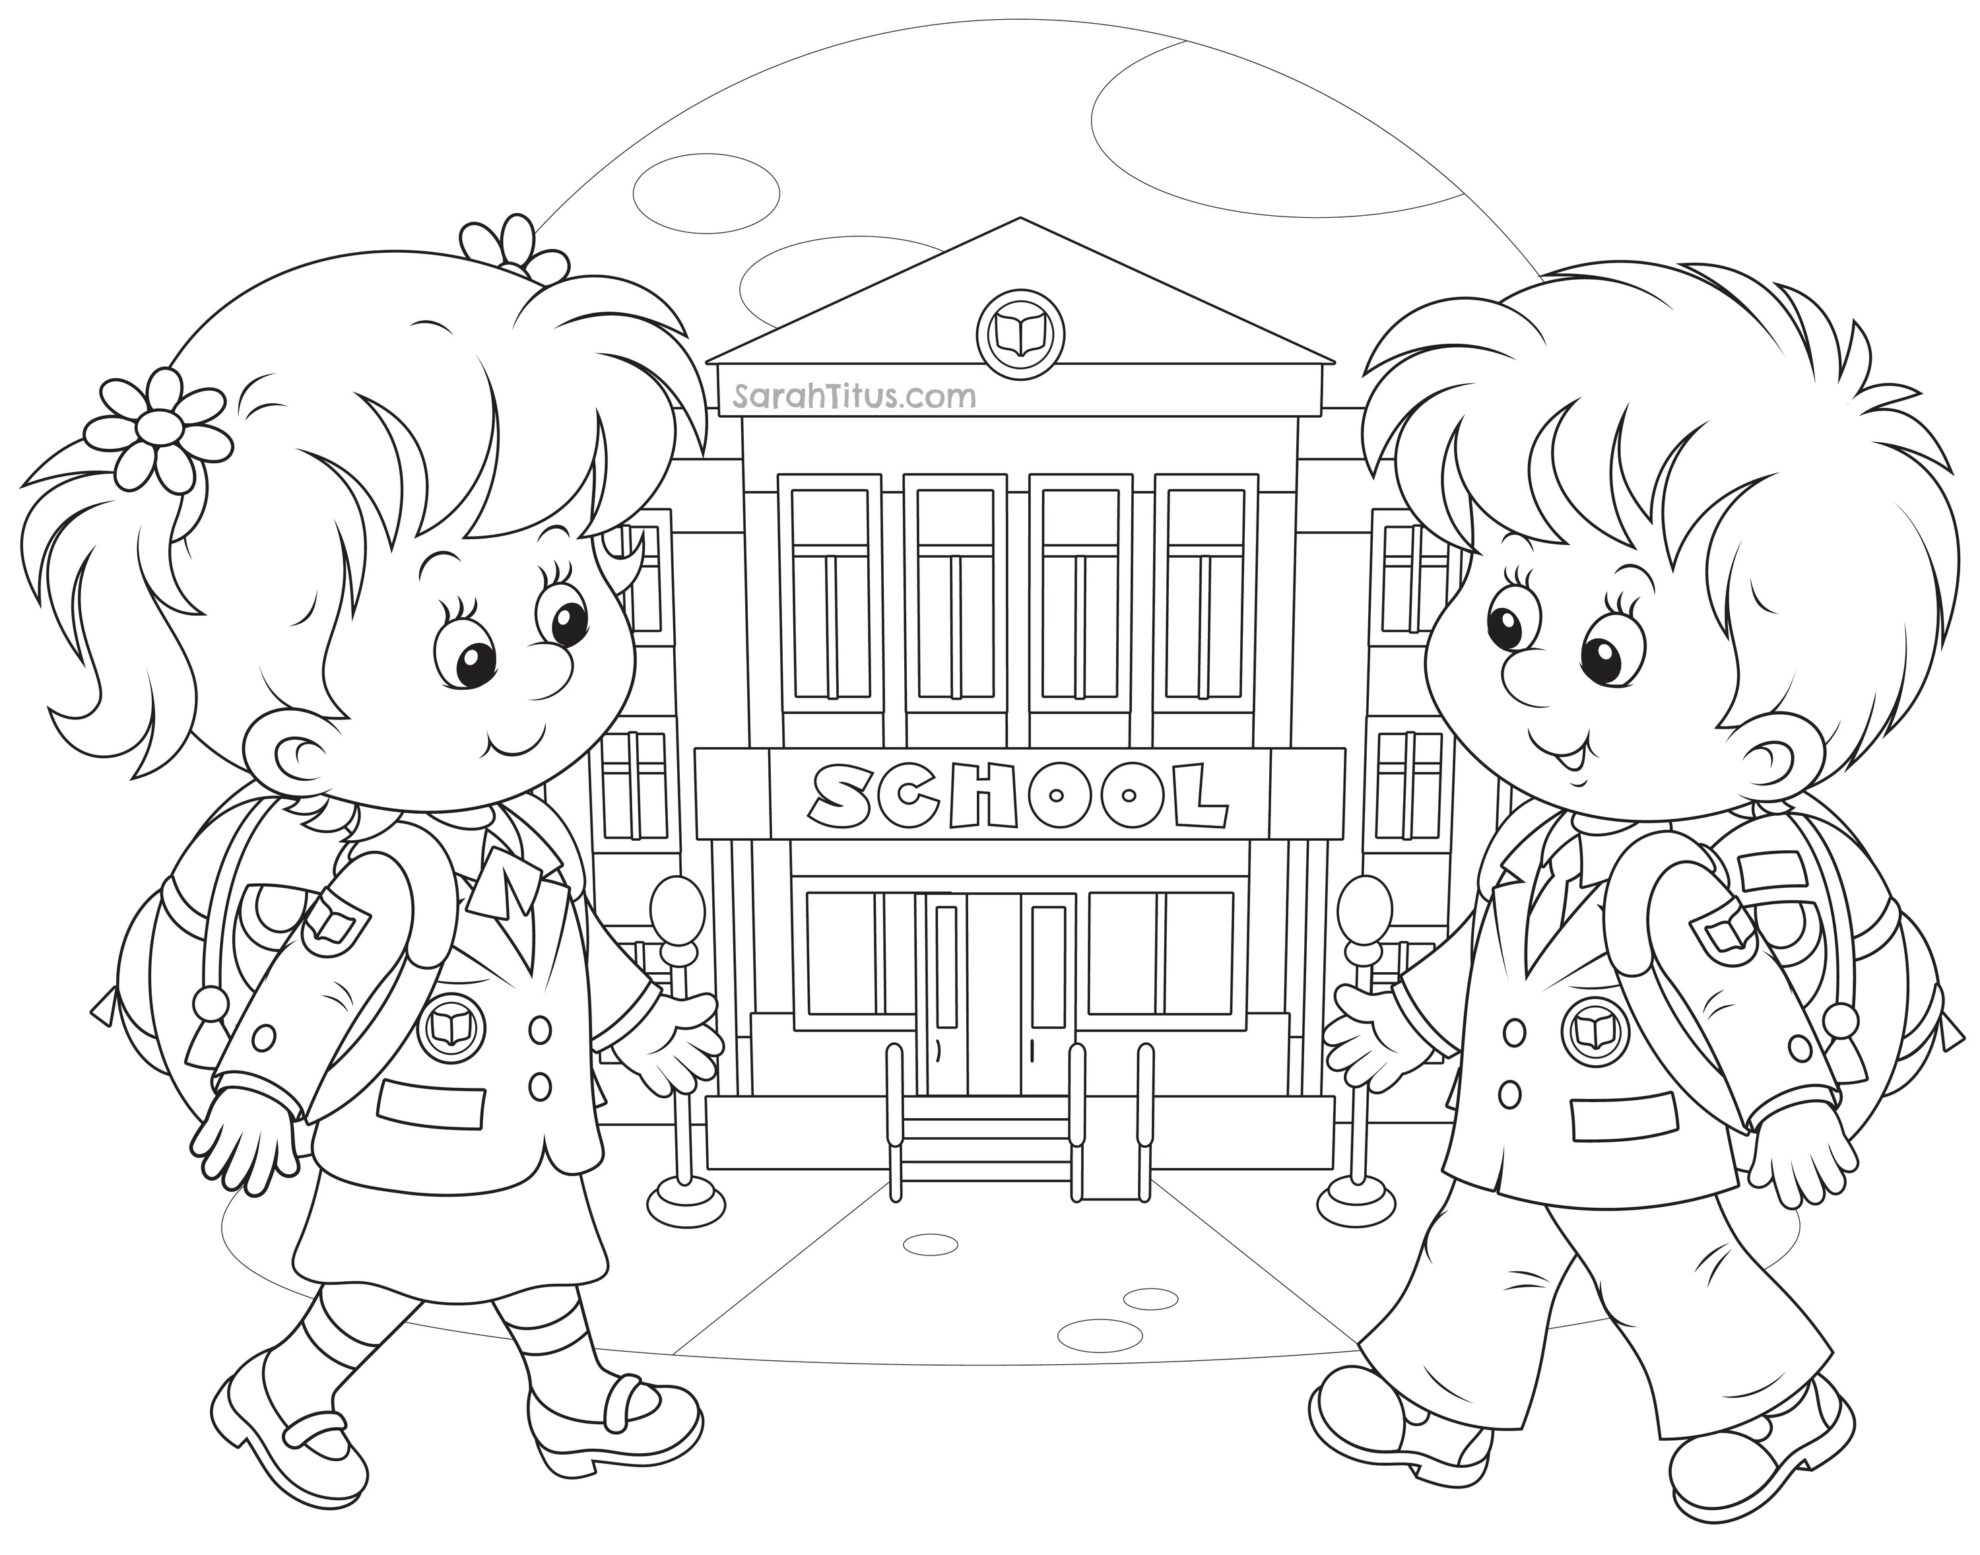 Back to school coloring pages sarah titus for Back to school coloring pages free printables